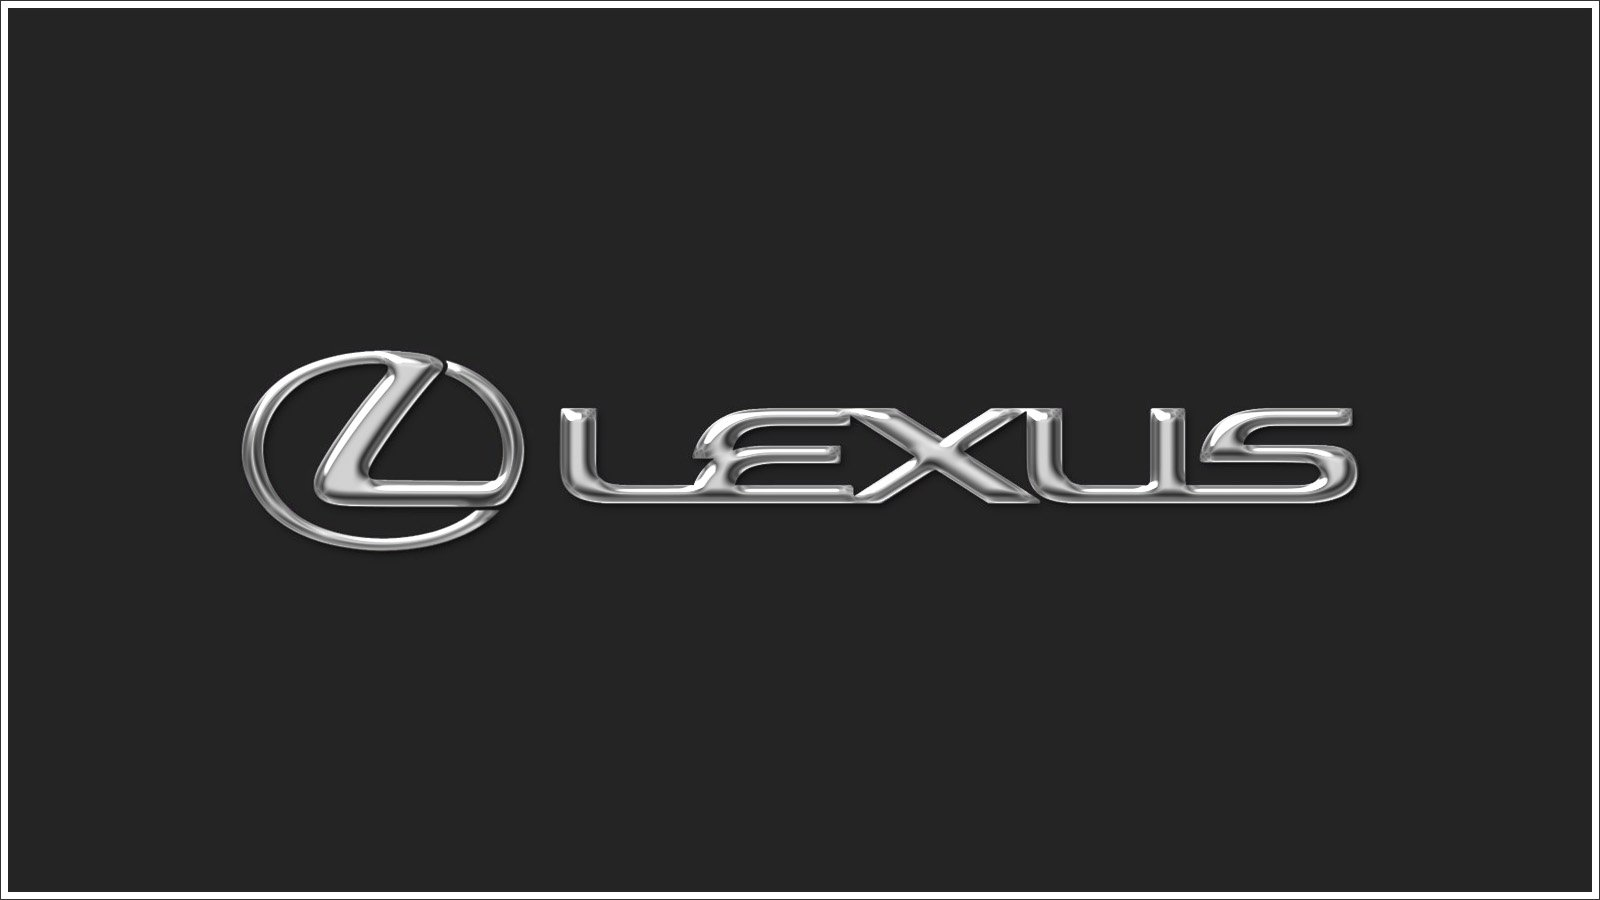 Lexus Logo Meaning And History Latest Models World Cars Brands